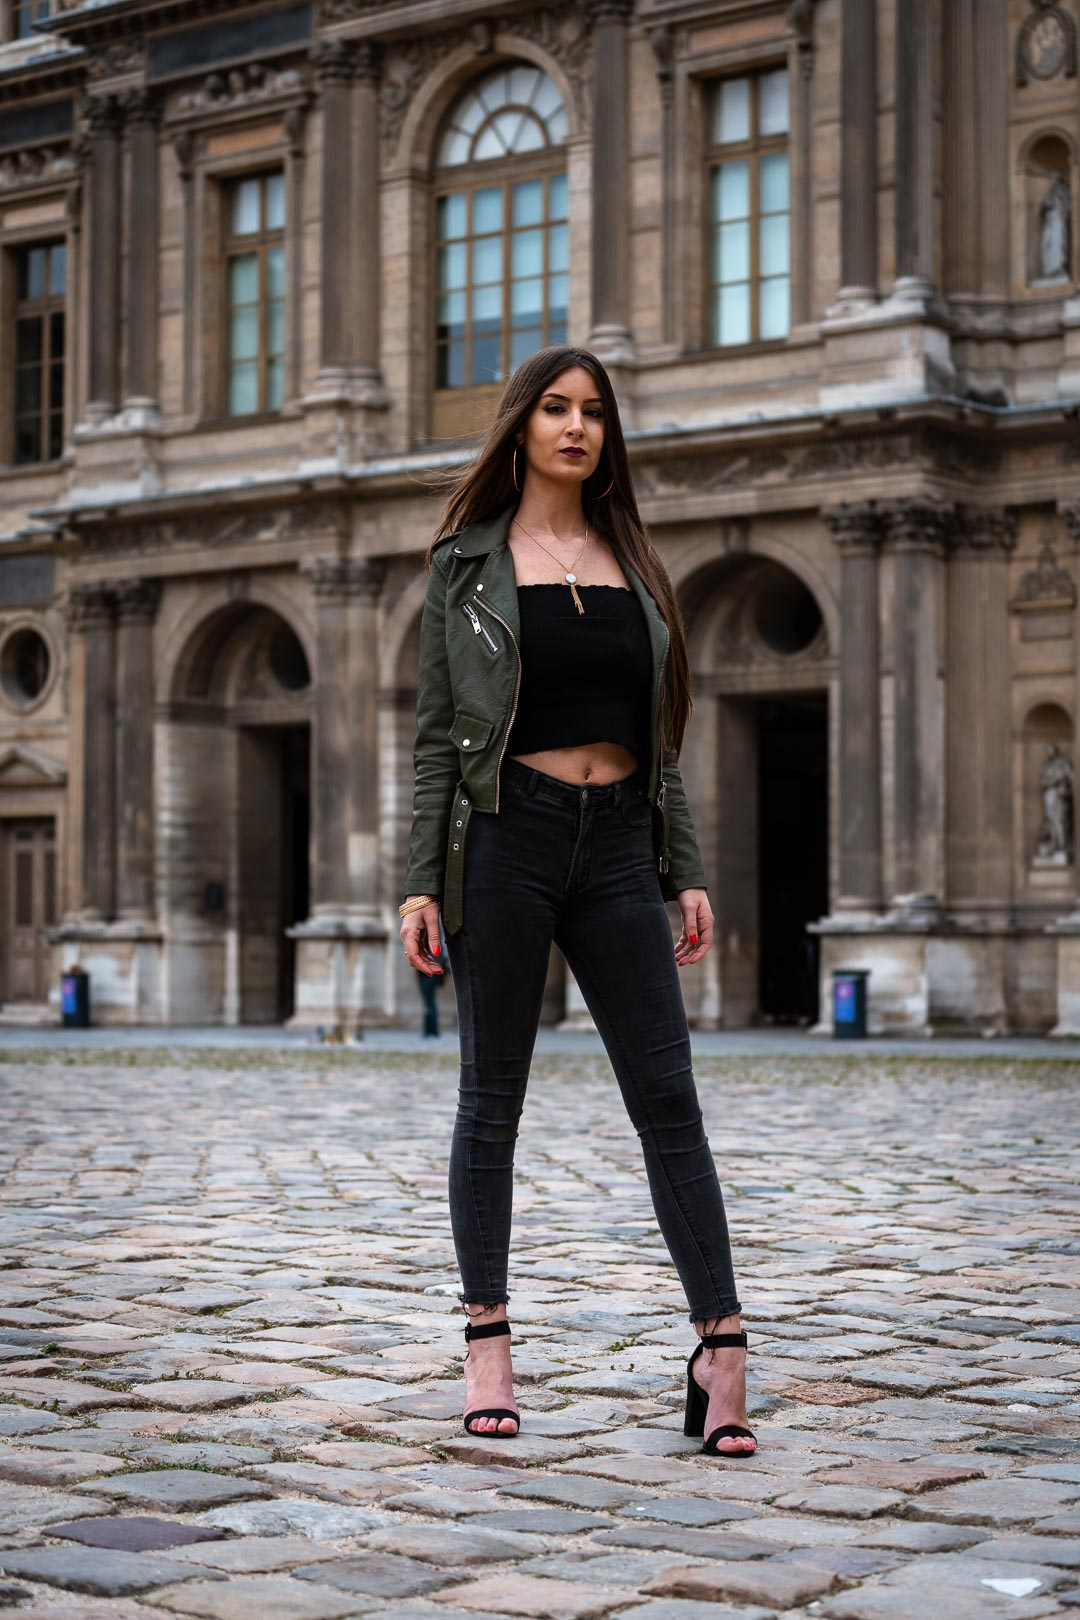 Woman in urban attire standing in front of the Louvre castle